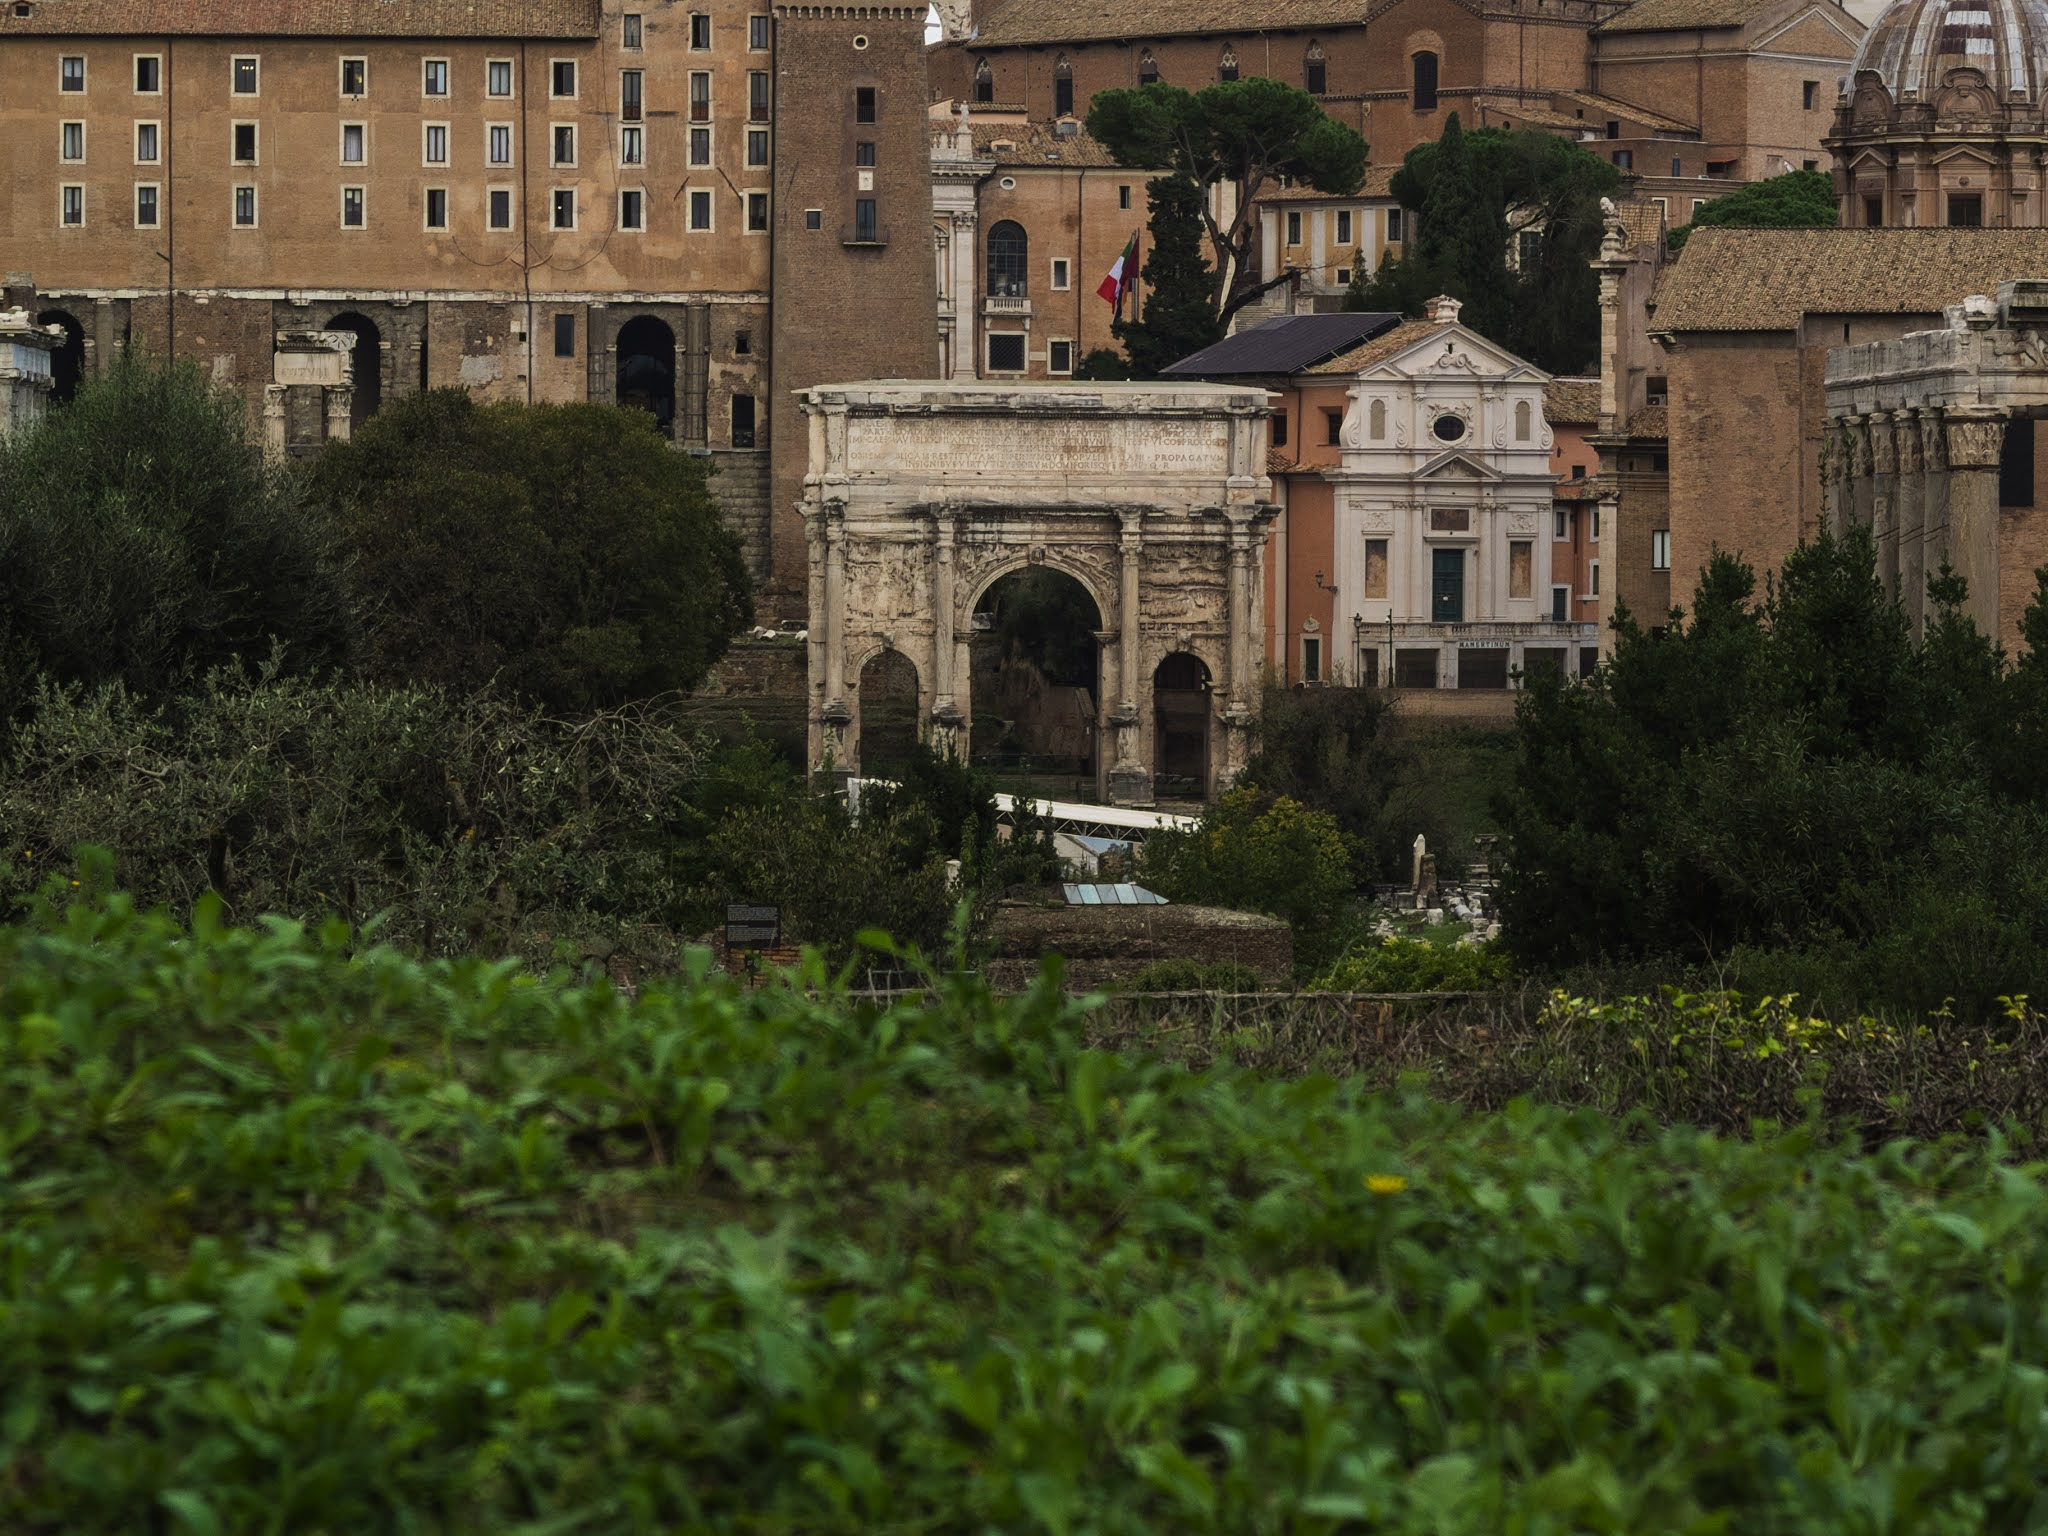 View of the Arch of Septimius Severus in the Roman Forum from the Palatine Hill.